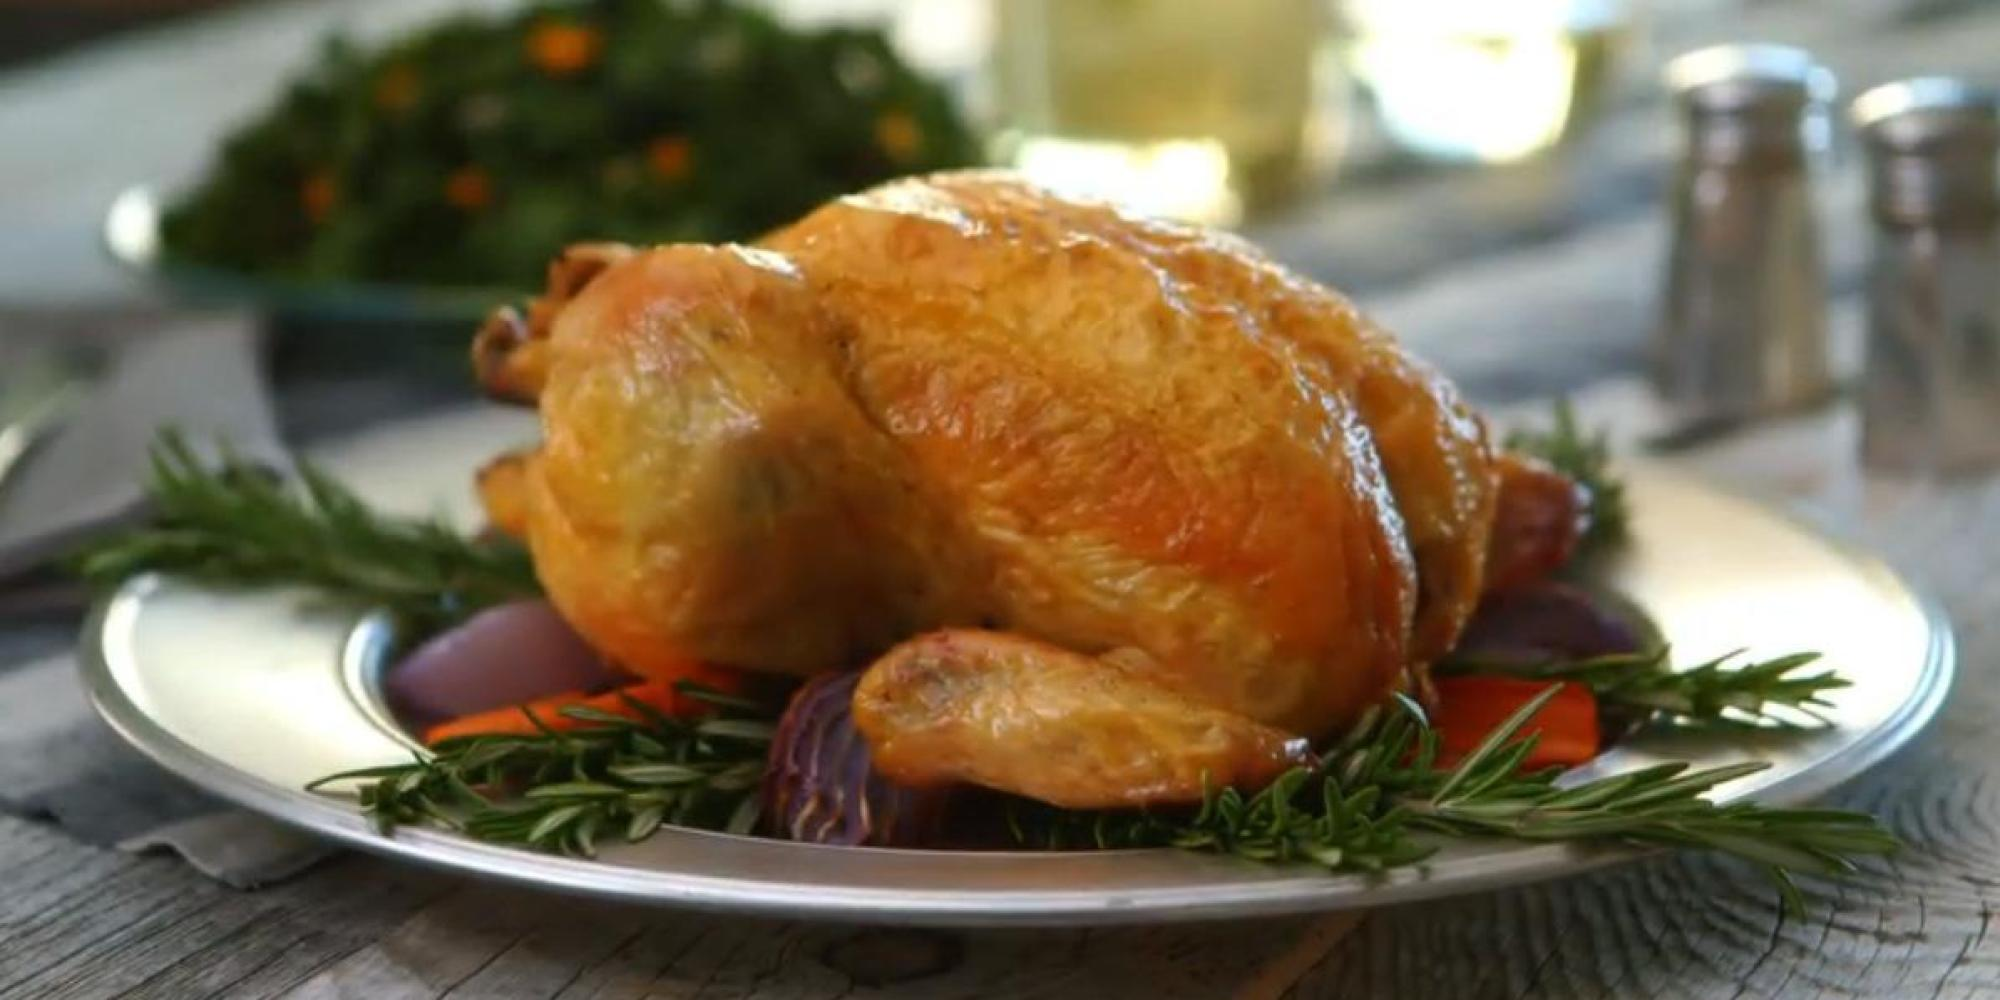 Sunday Dinner: Lemon Rosemary Roasted Chicken (VIDEO) | HuffPost